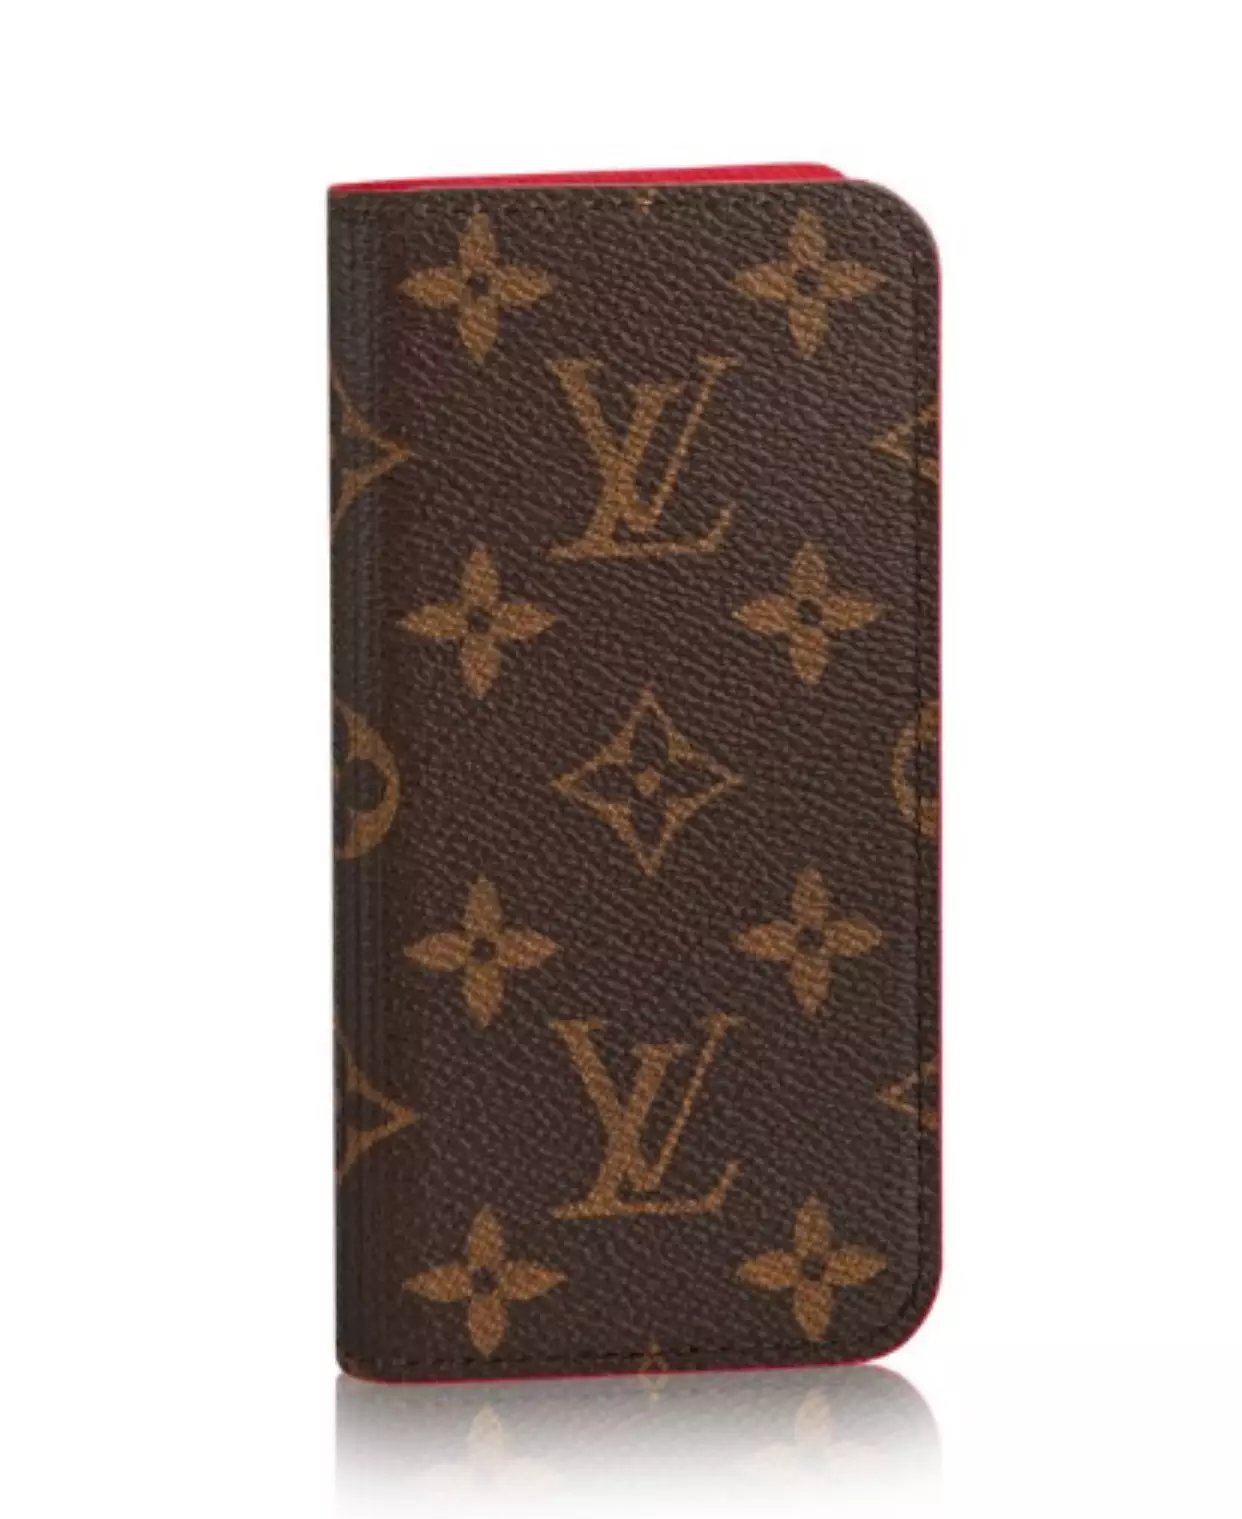 schöne iphone hüllen eigene iphone hülle Louis Vuitton iphone 8 Plus hüllen iphone 8 Plus hülle handyhüllen für alle handys dünnste iphone hülle foto handy ca8 Plus aluminium hülle iphone 8 Plus iphone 8 Plus etui leder